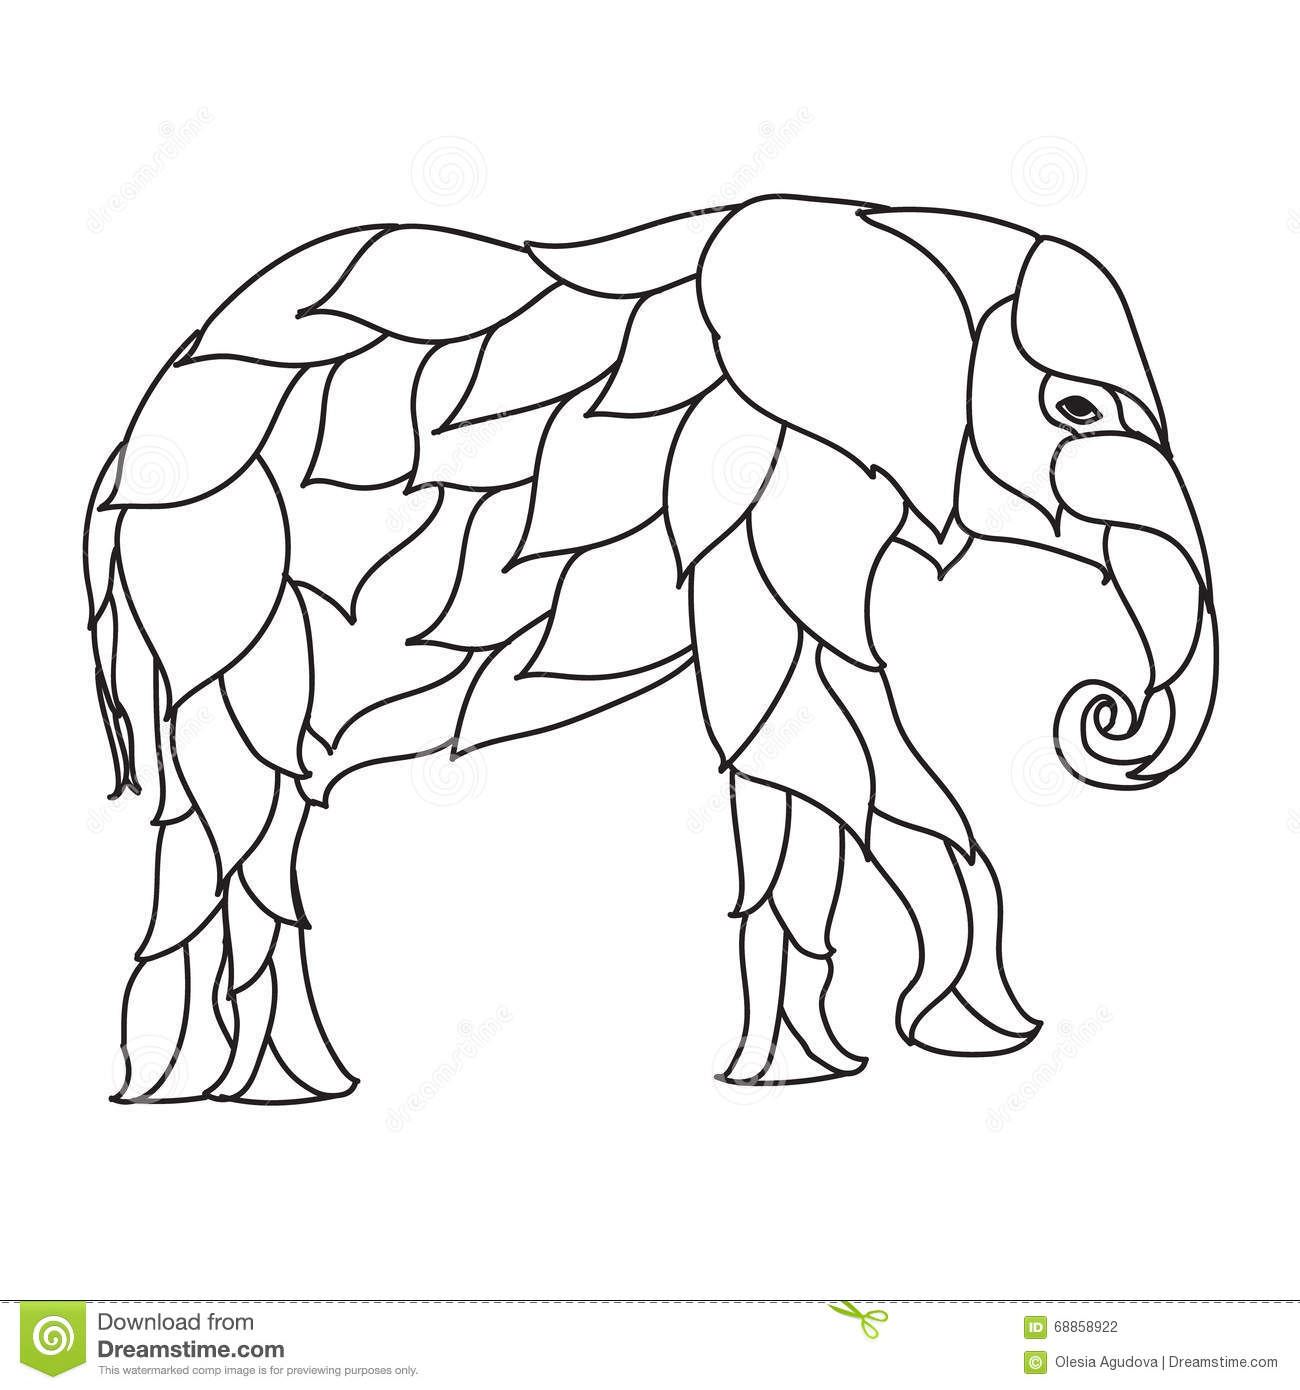 Elephant Zentangle Coloring Pages Coloring Pages